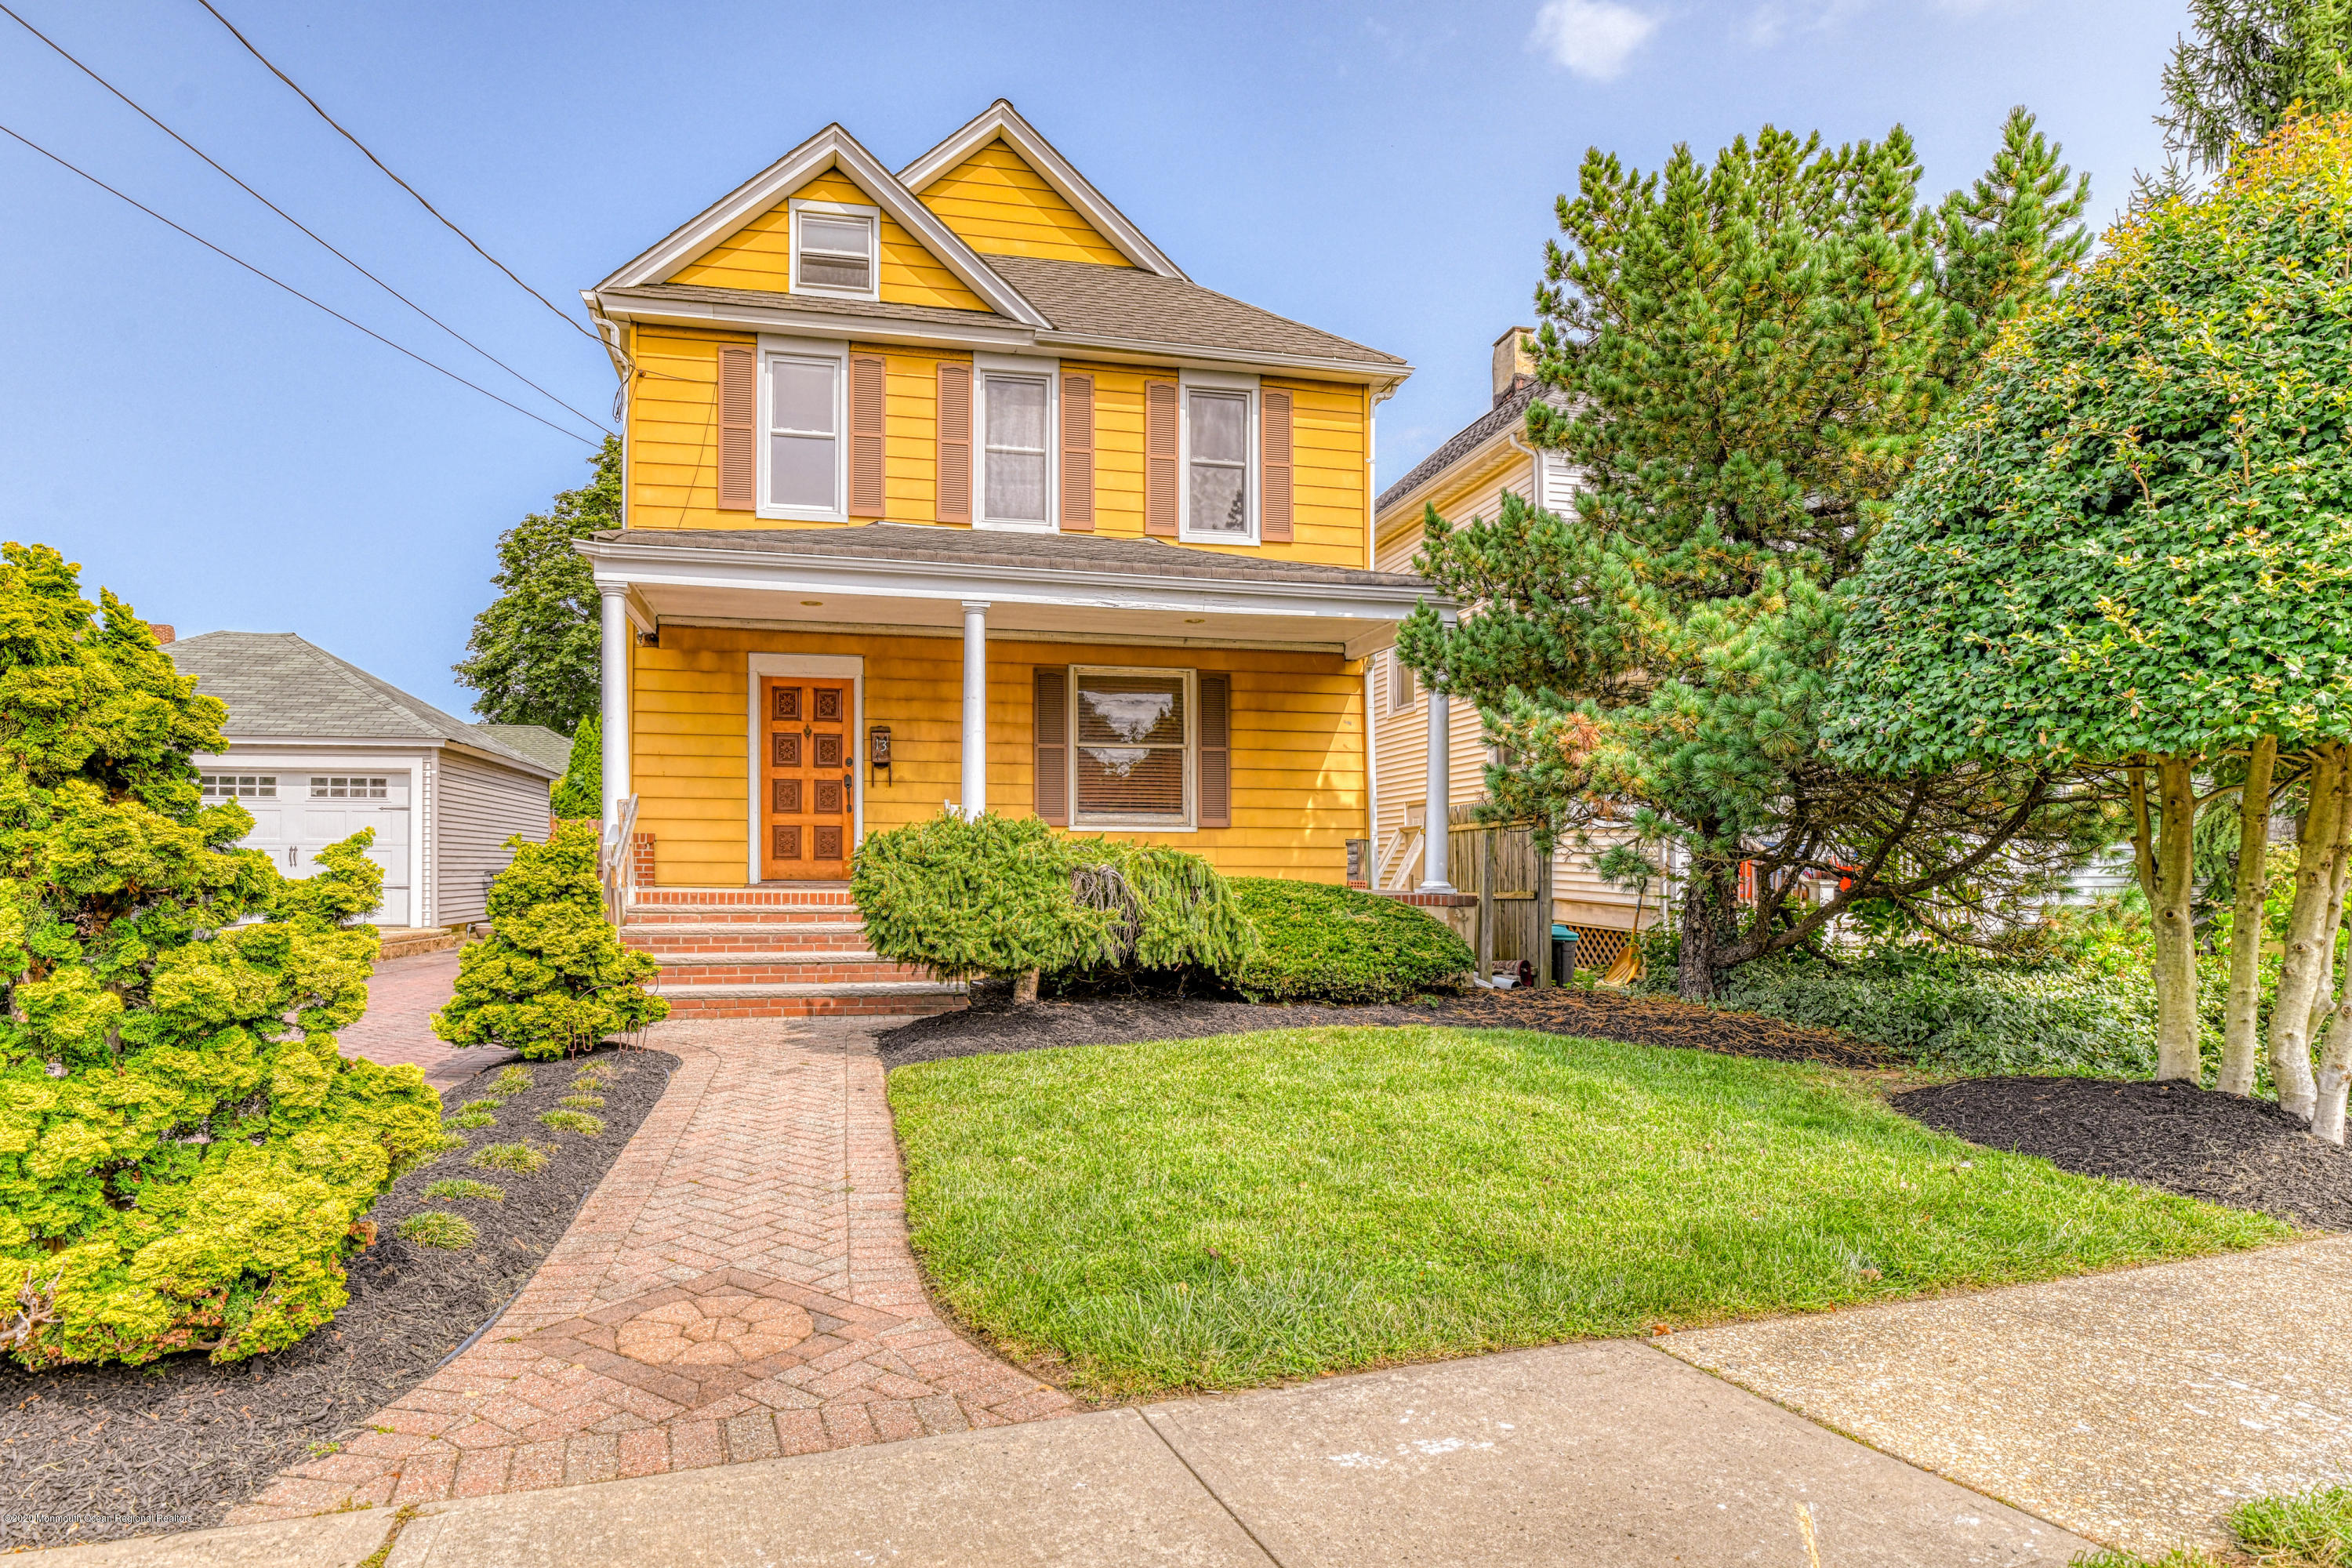 Photo of 13 Prospect Avenue, Red Bank, NJ 07701